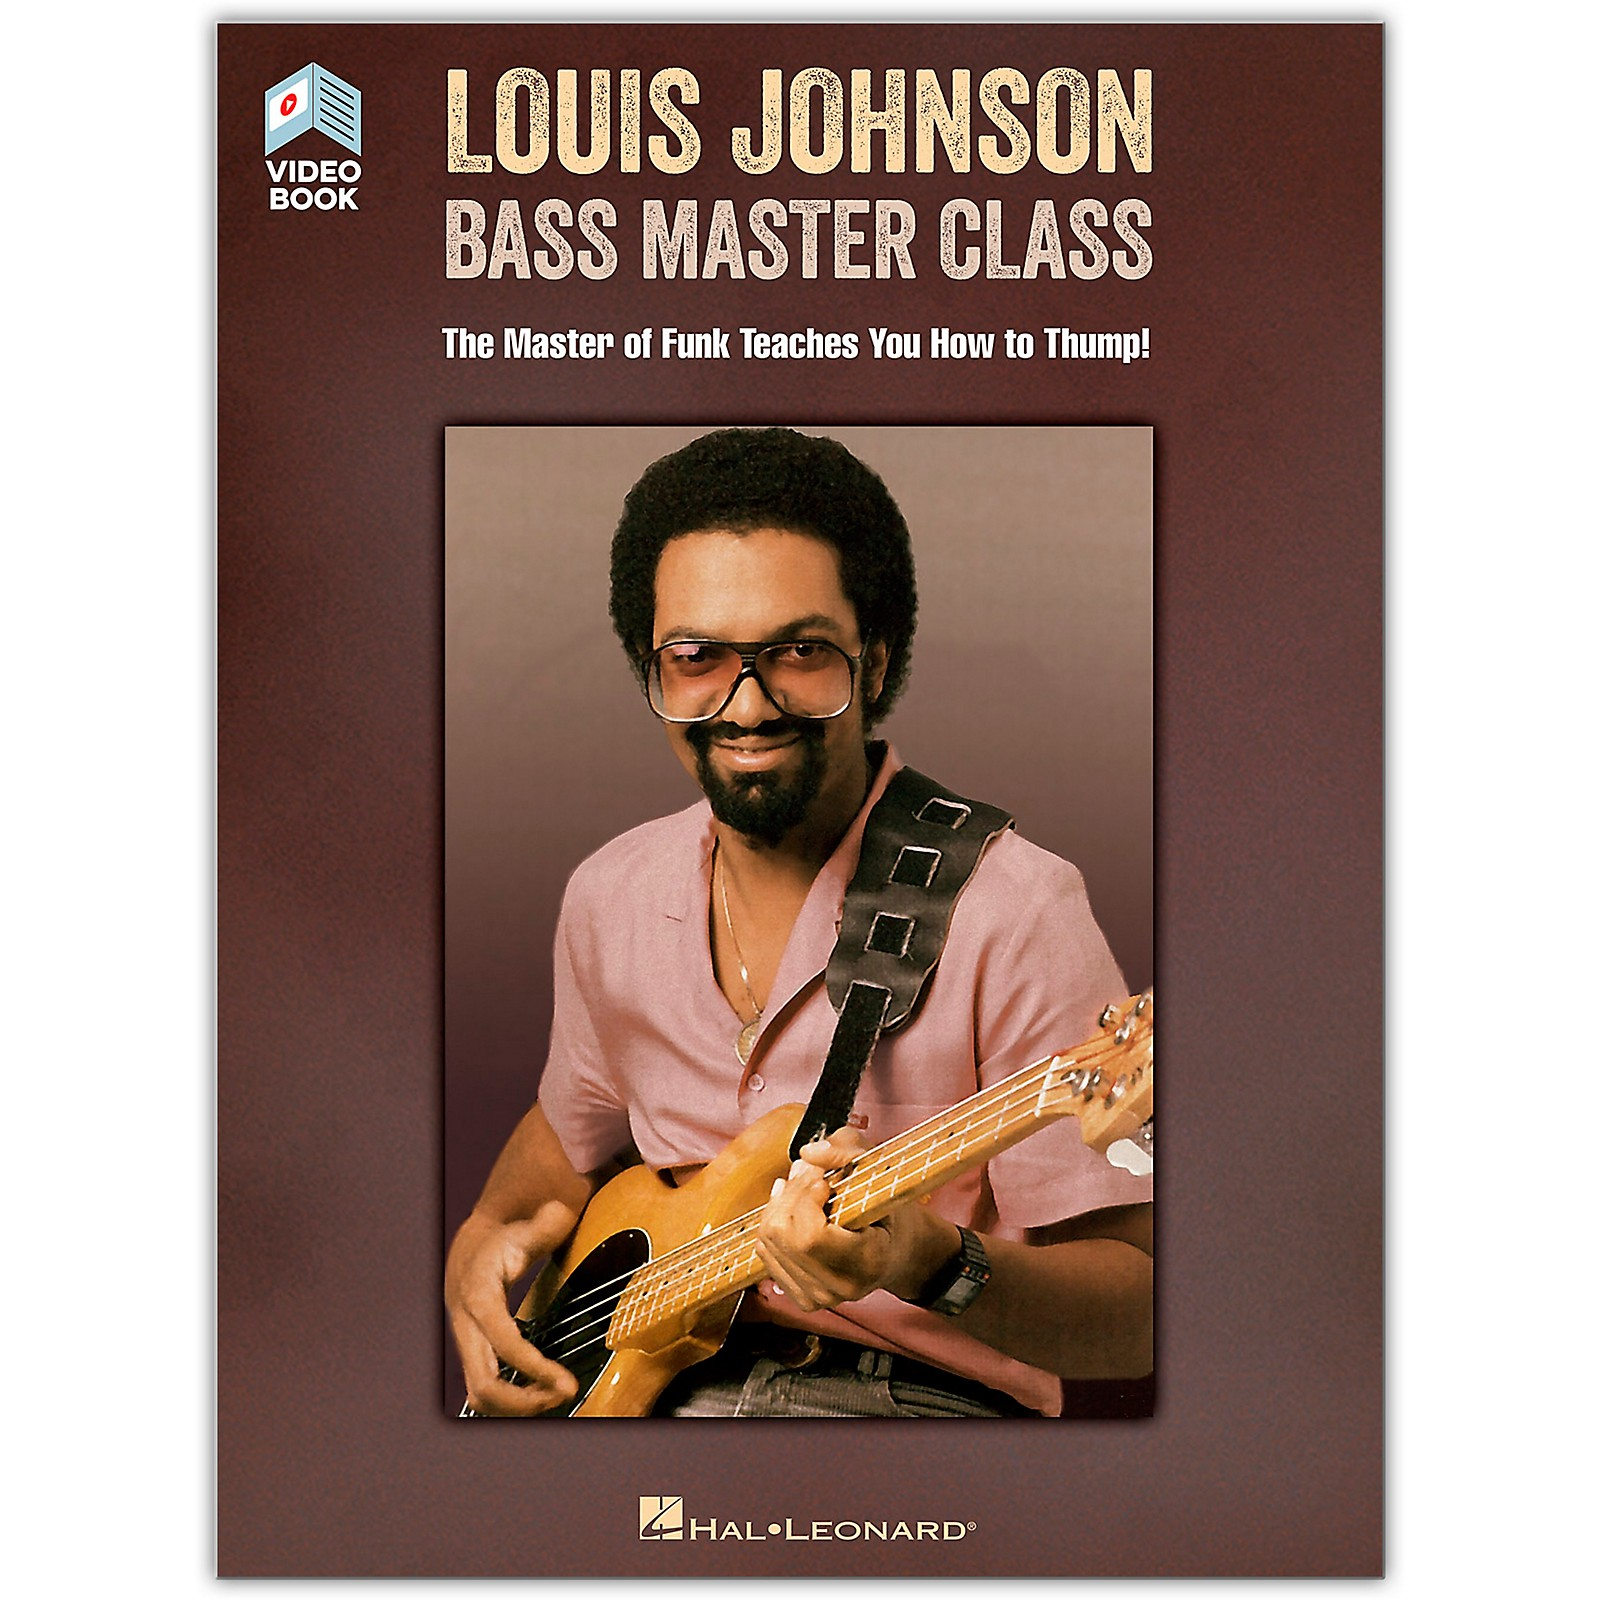 Hal Leonard Louis Johnson - Bass Master Class -The Master of Funk Teaches You How to Thump! Book/Video Online